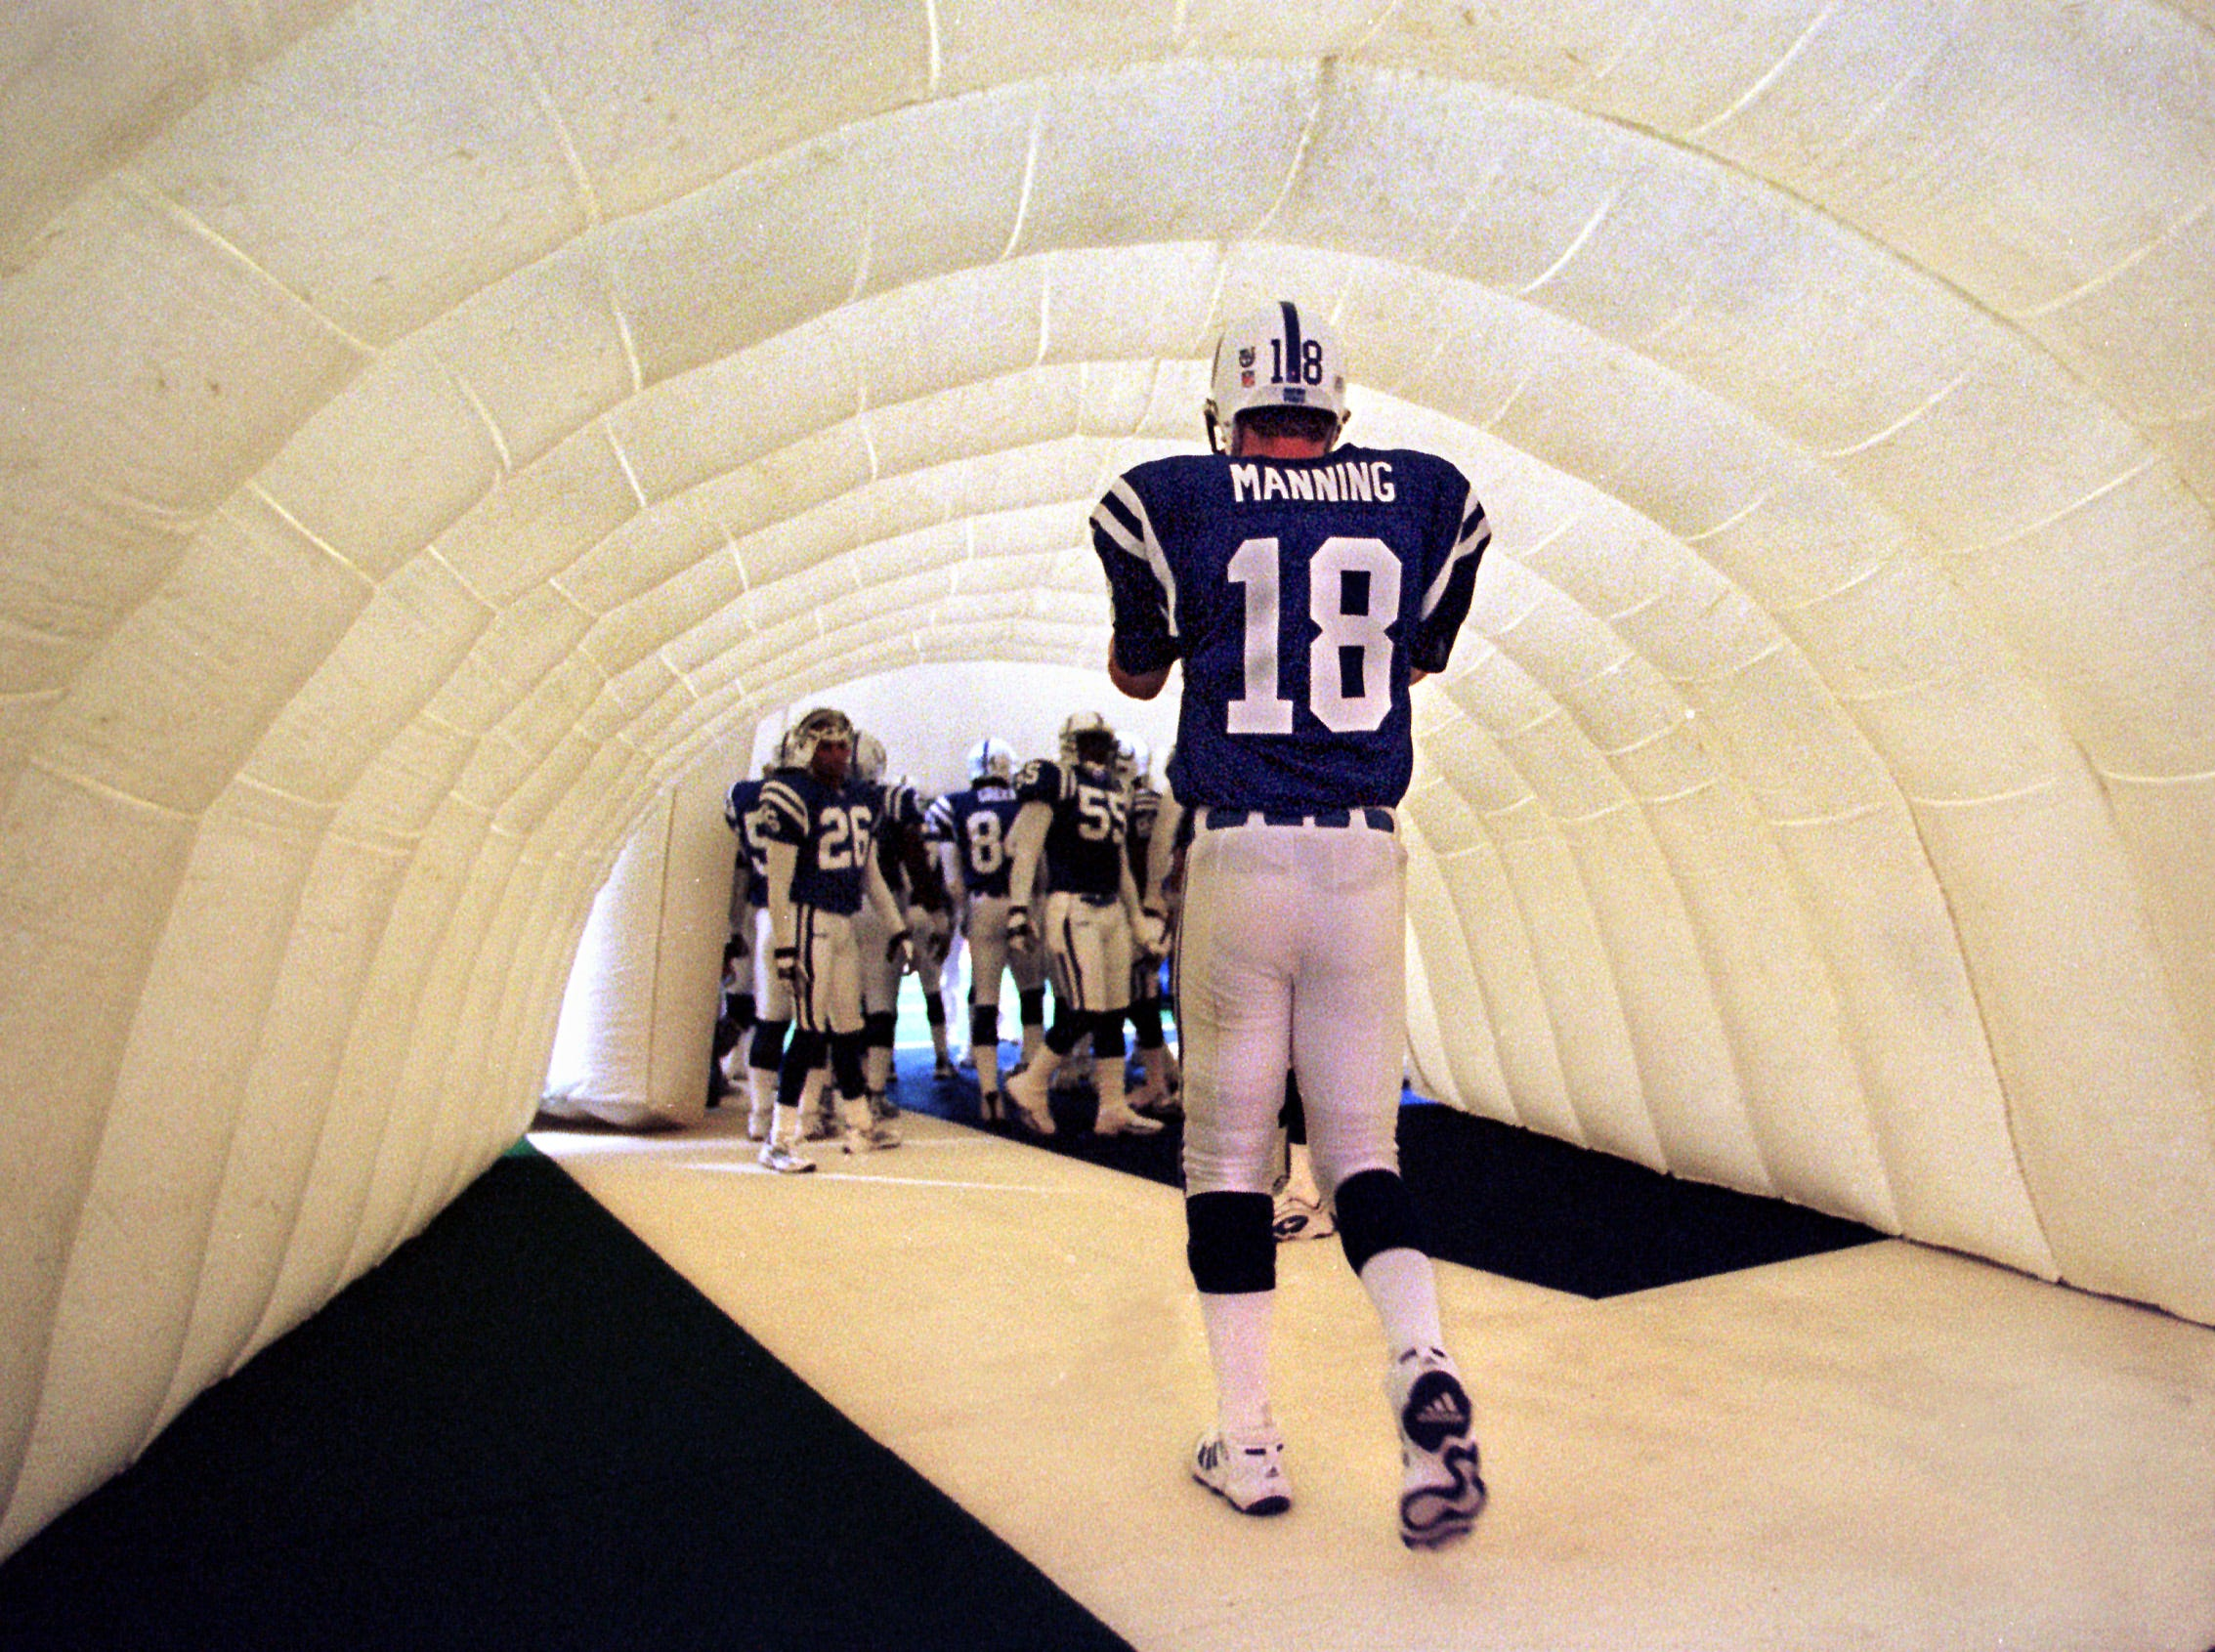 Indianapolis Colts quarterback Peyton Manning walks through the giant football helmet before being introduced before the start of their game against the New England Patriots on Dec 12, 1999